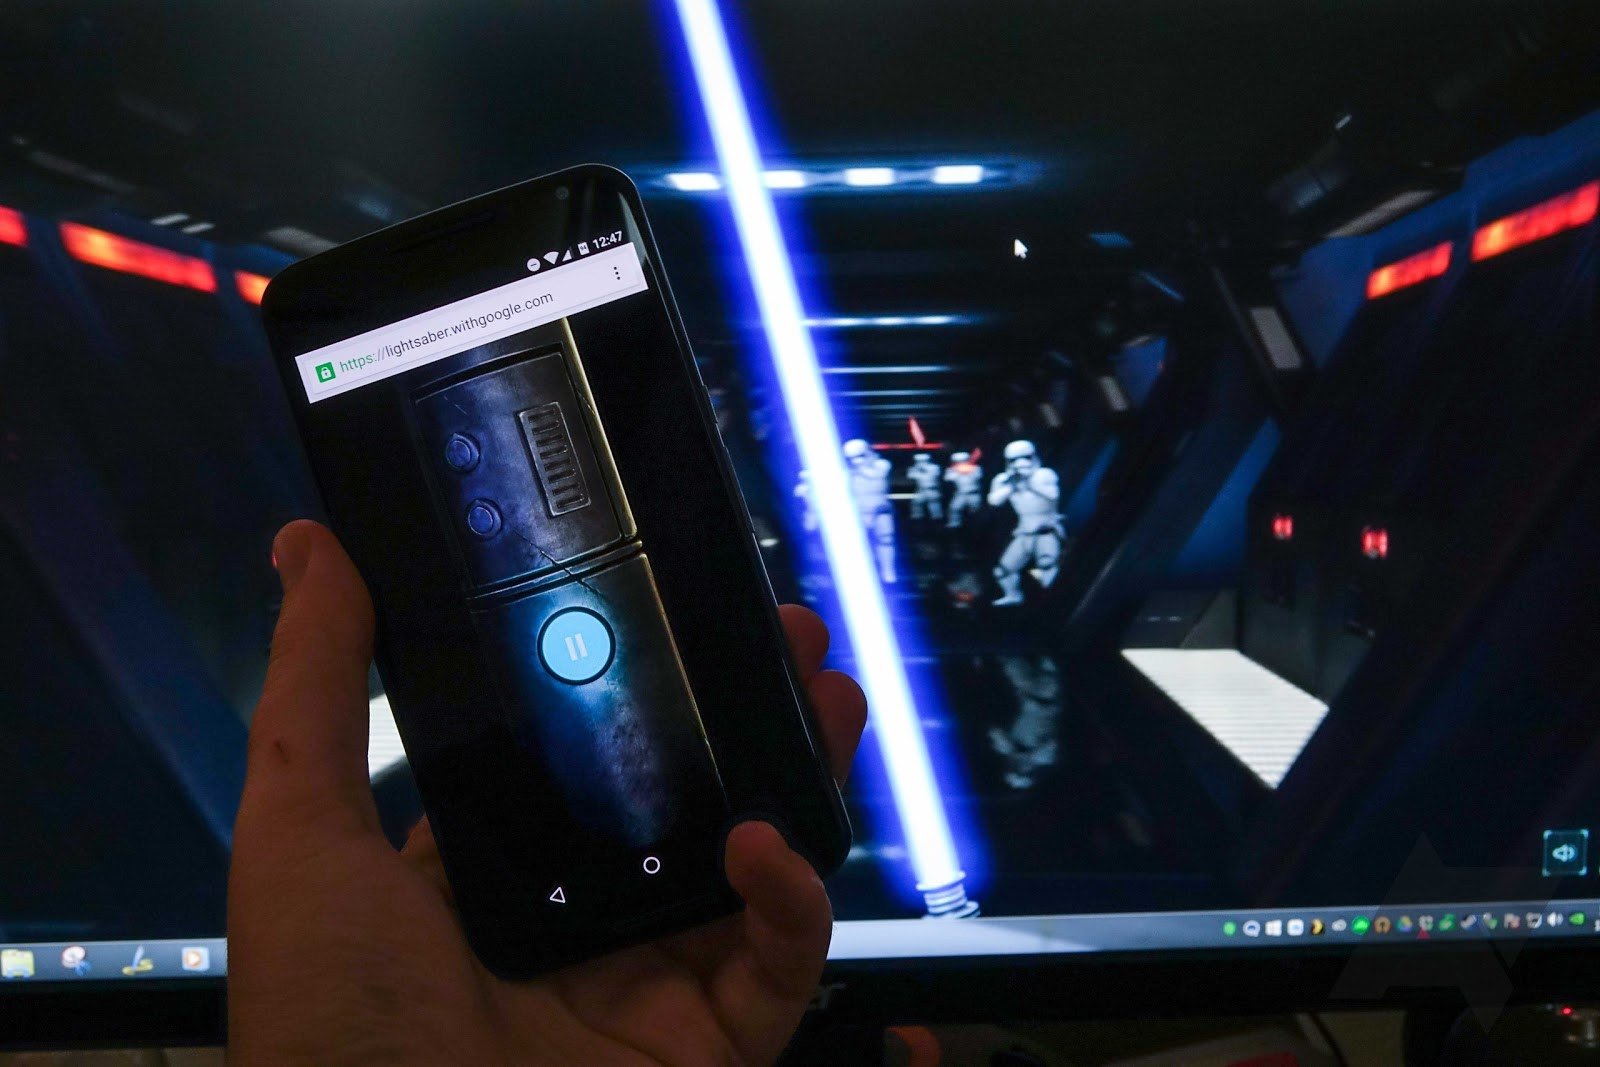 Wield Your Phone As A Lightsaber With Google's Latest Chrome Experiment